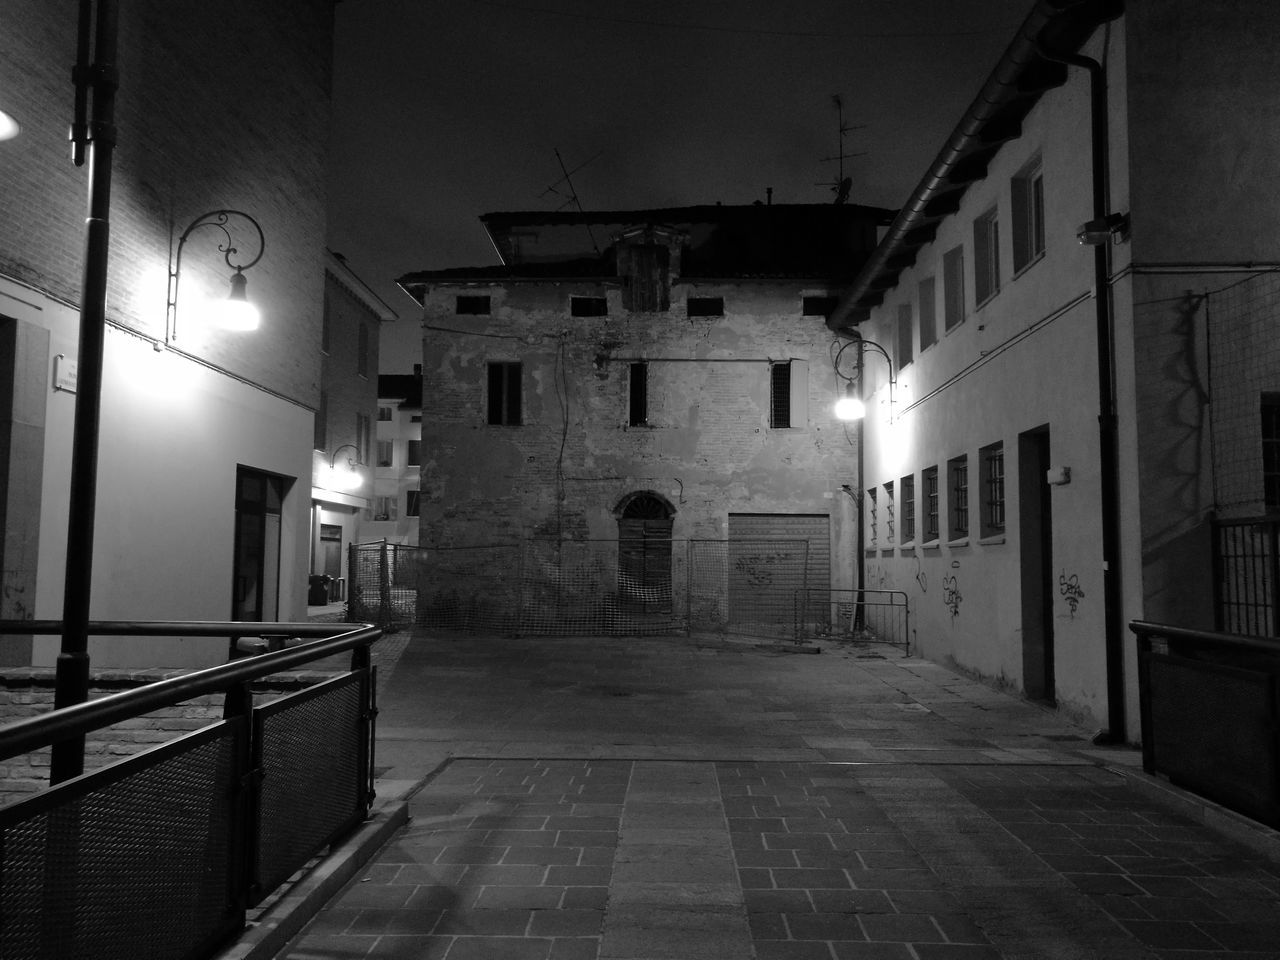 Blackandwhite Blackandwhite Photography Black&white Monochrome Rural Village Nightphotography Night Lights Italy Town Center Old Buildings First Eyeem Photo